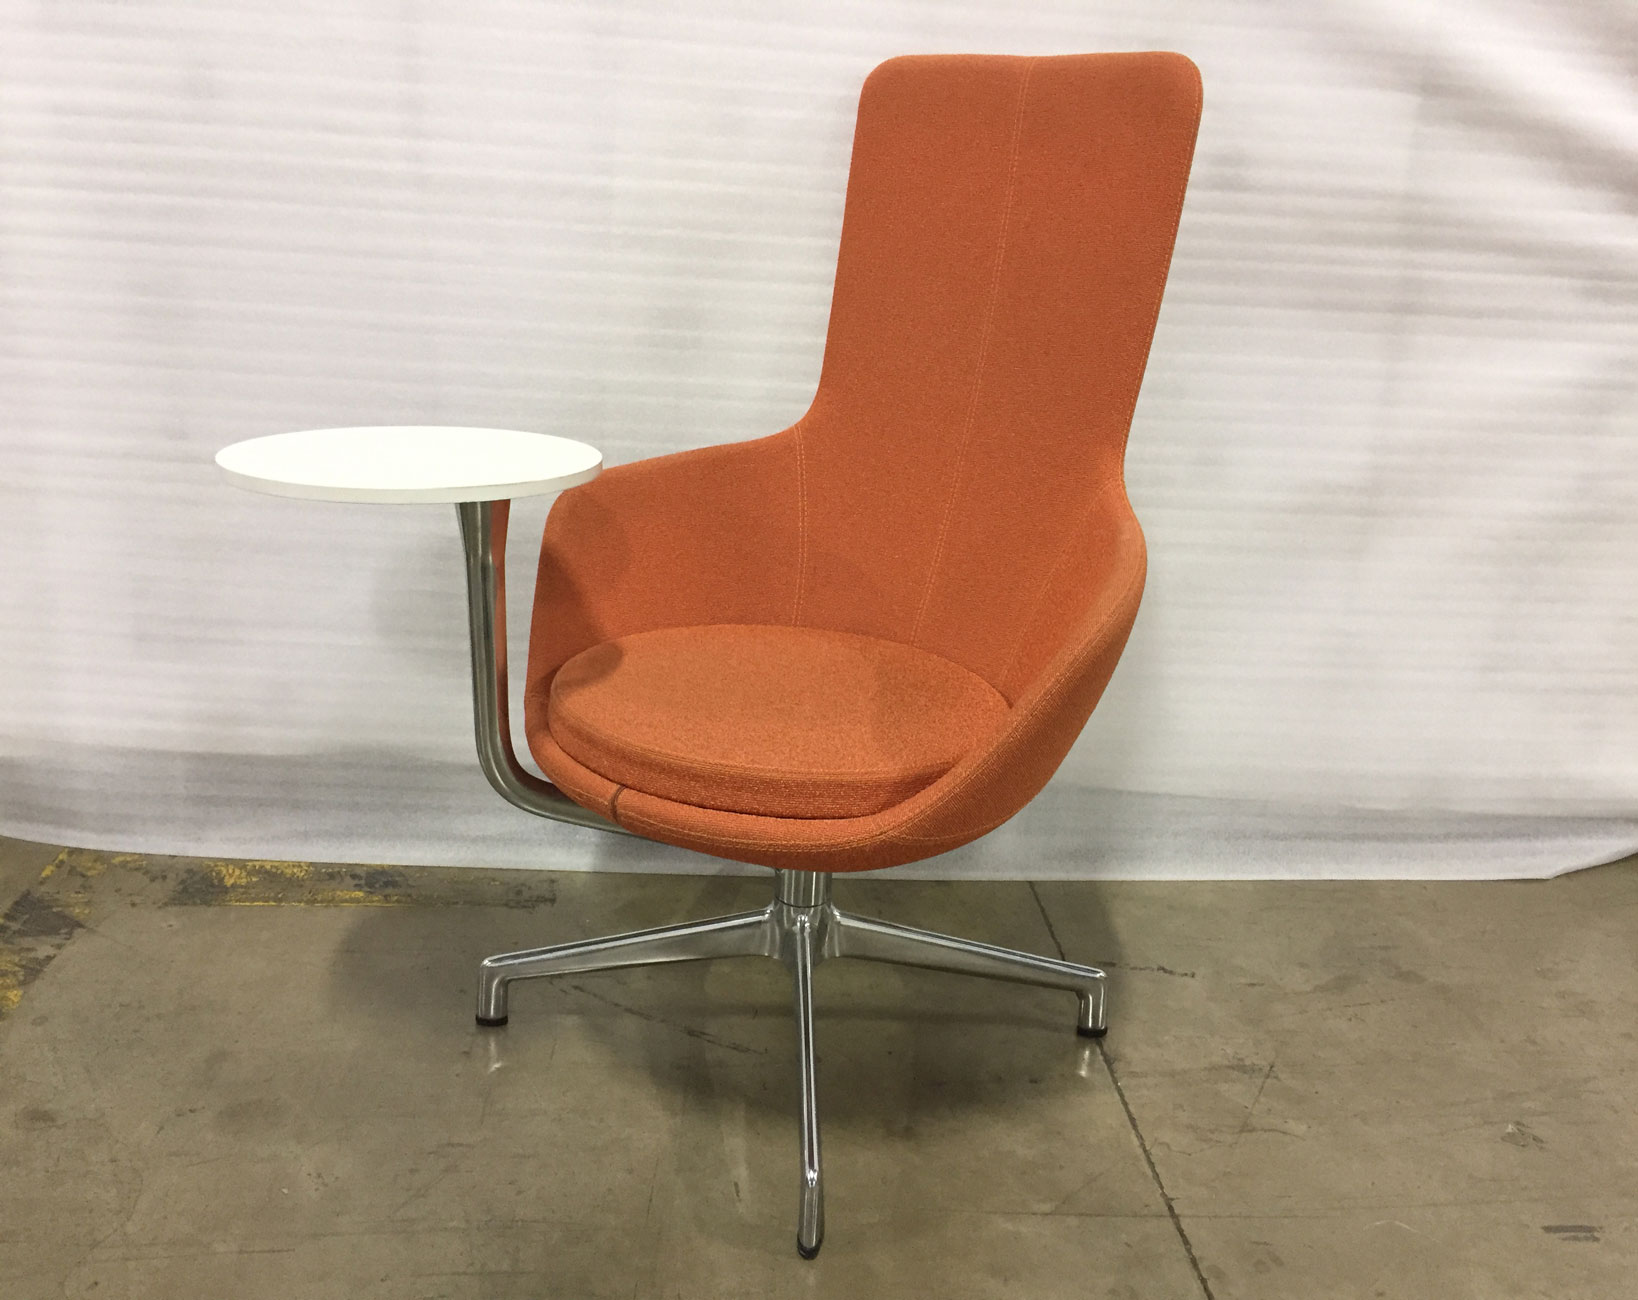 Tablet Arm Chair >> Used Keilhauer Tablet Arm Chair Office Furniture Ethosource